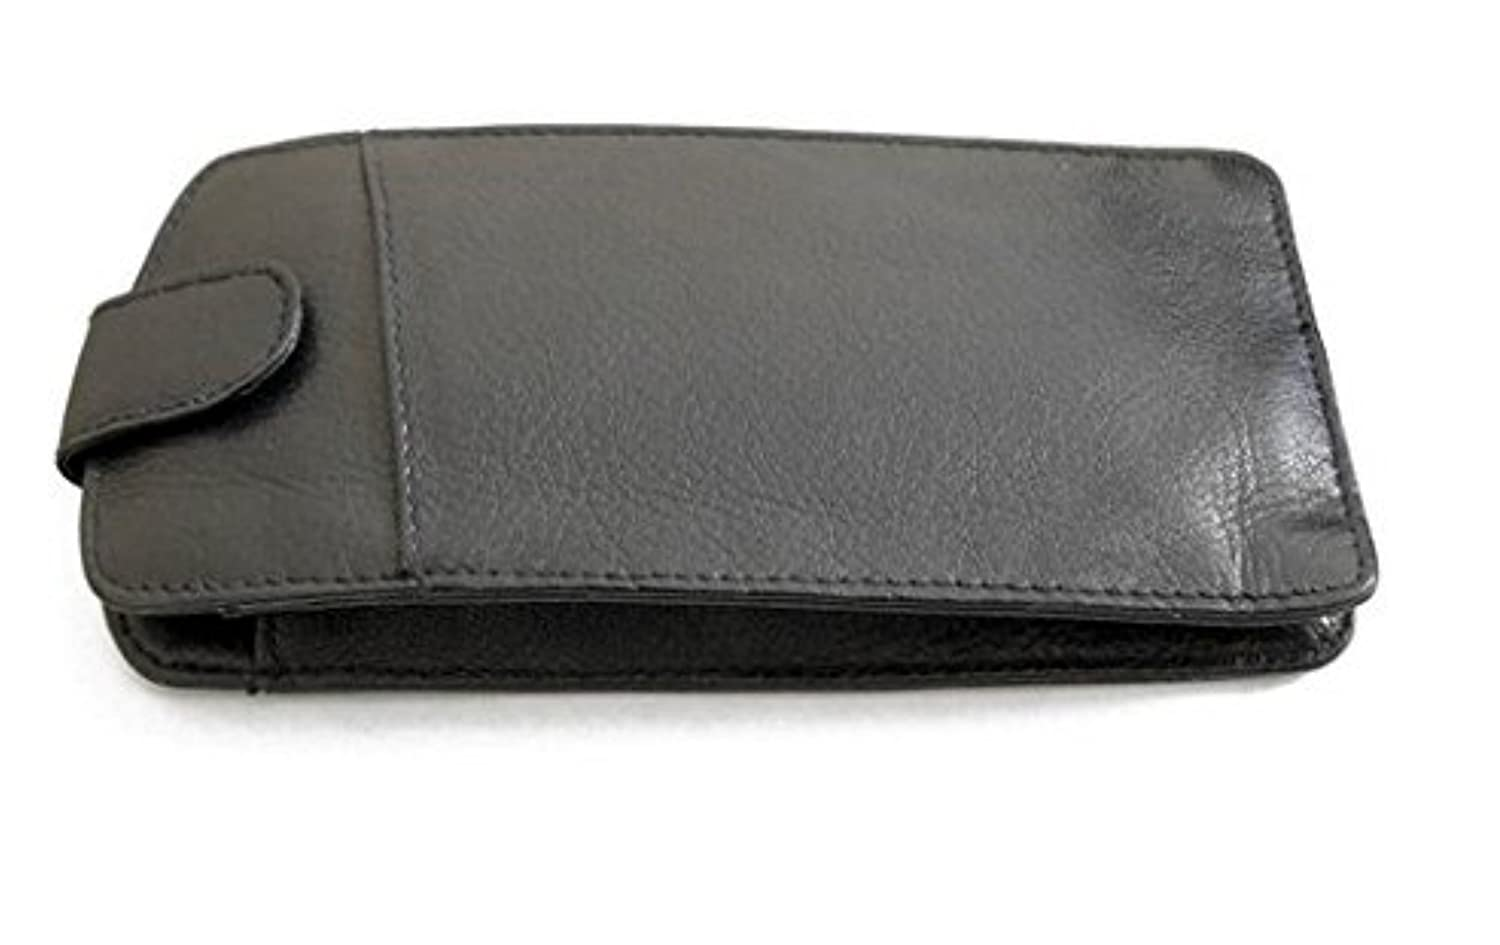 Leather Glasses Case by 'Vintage 51' - Black - Tab Top & Front Pocket 87b